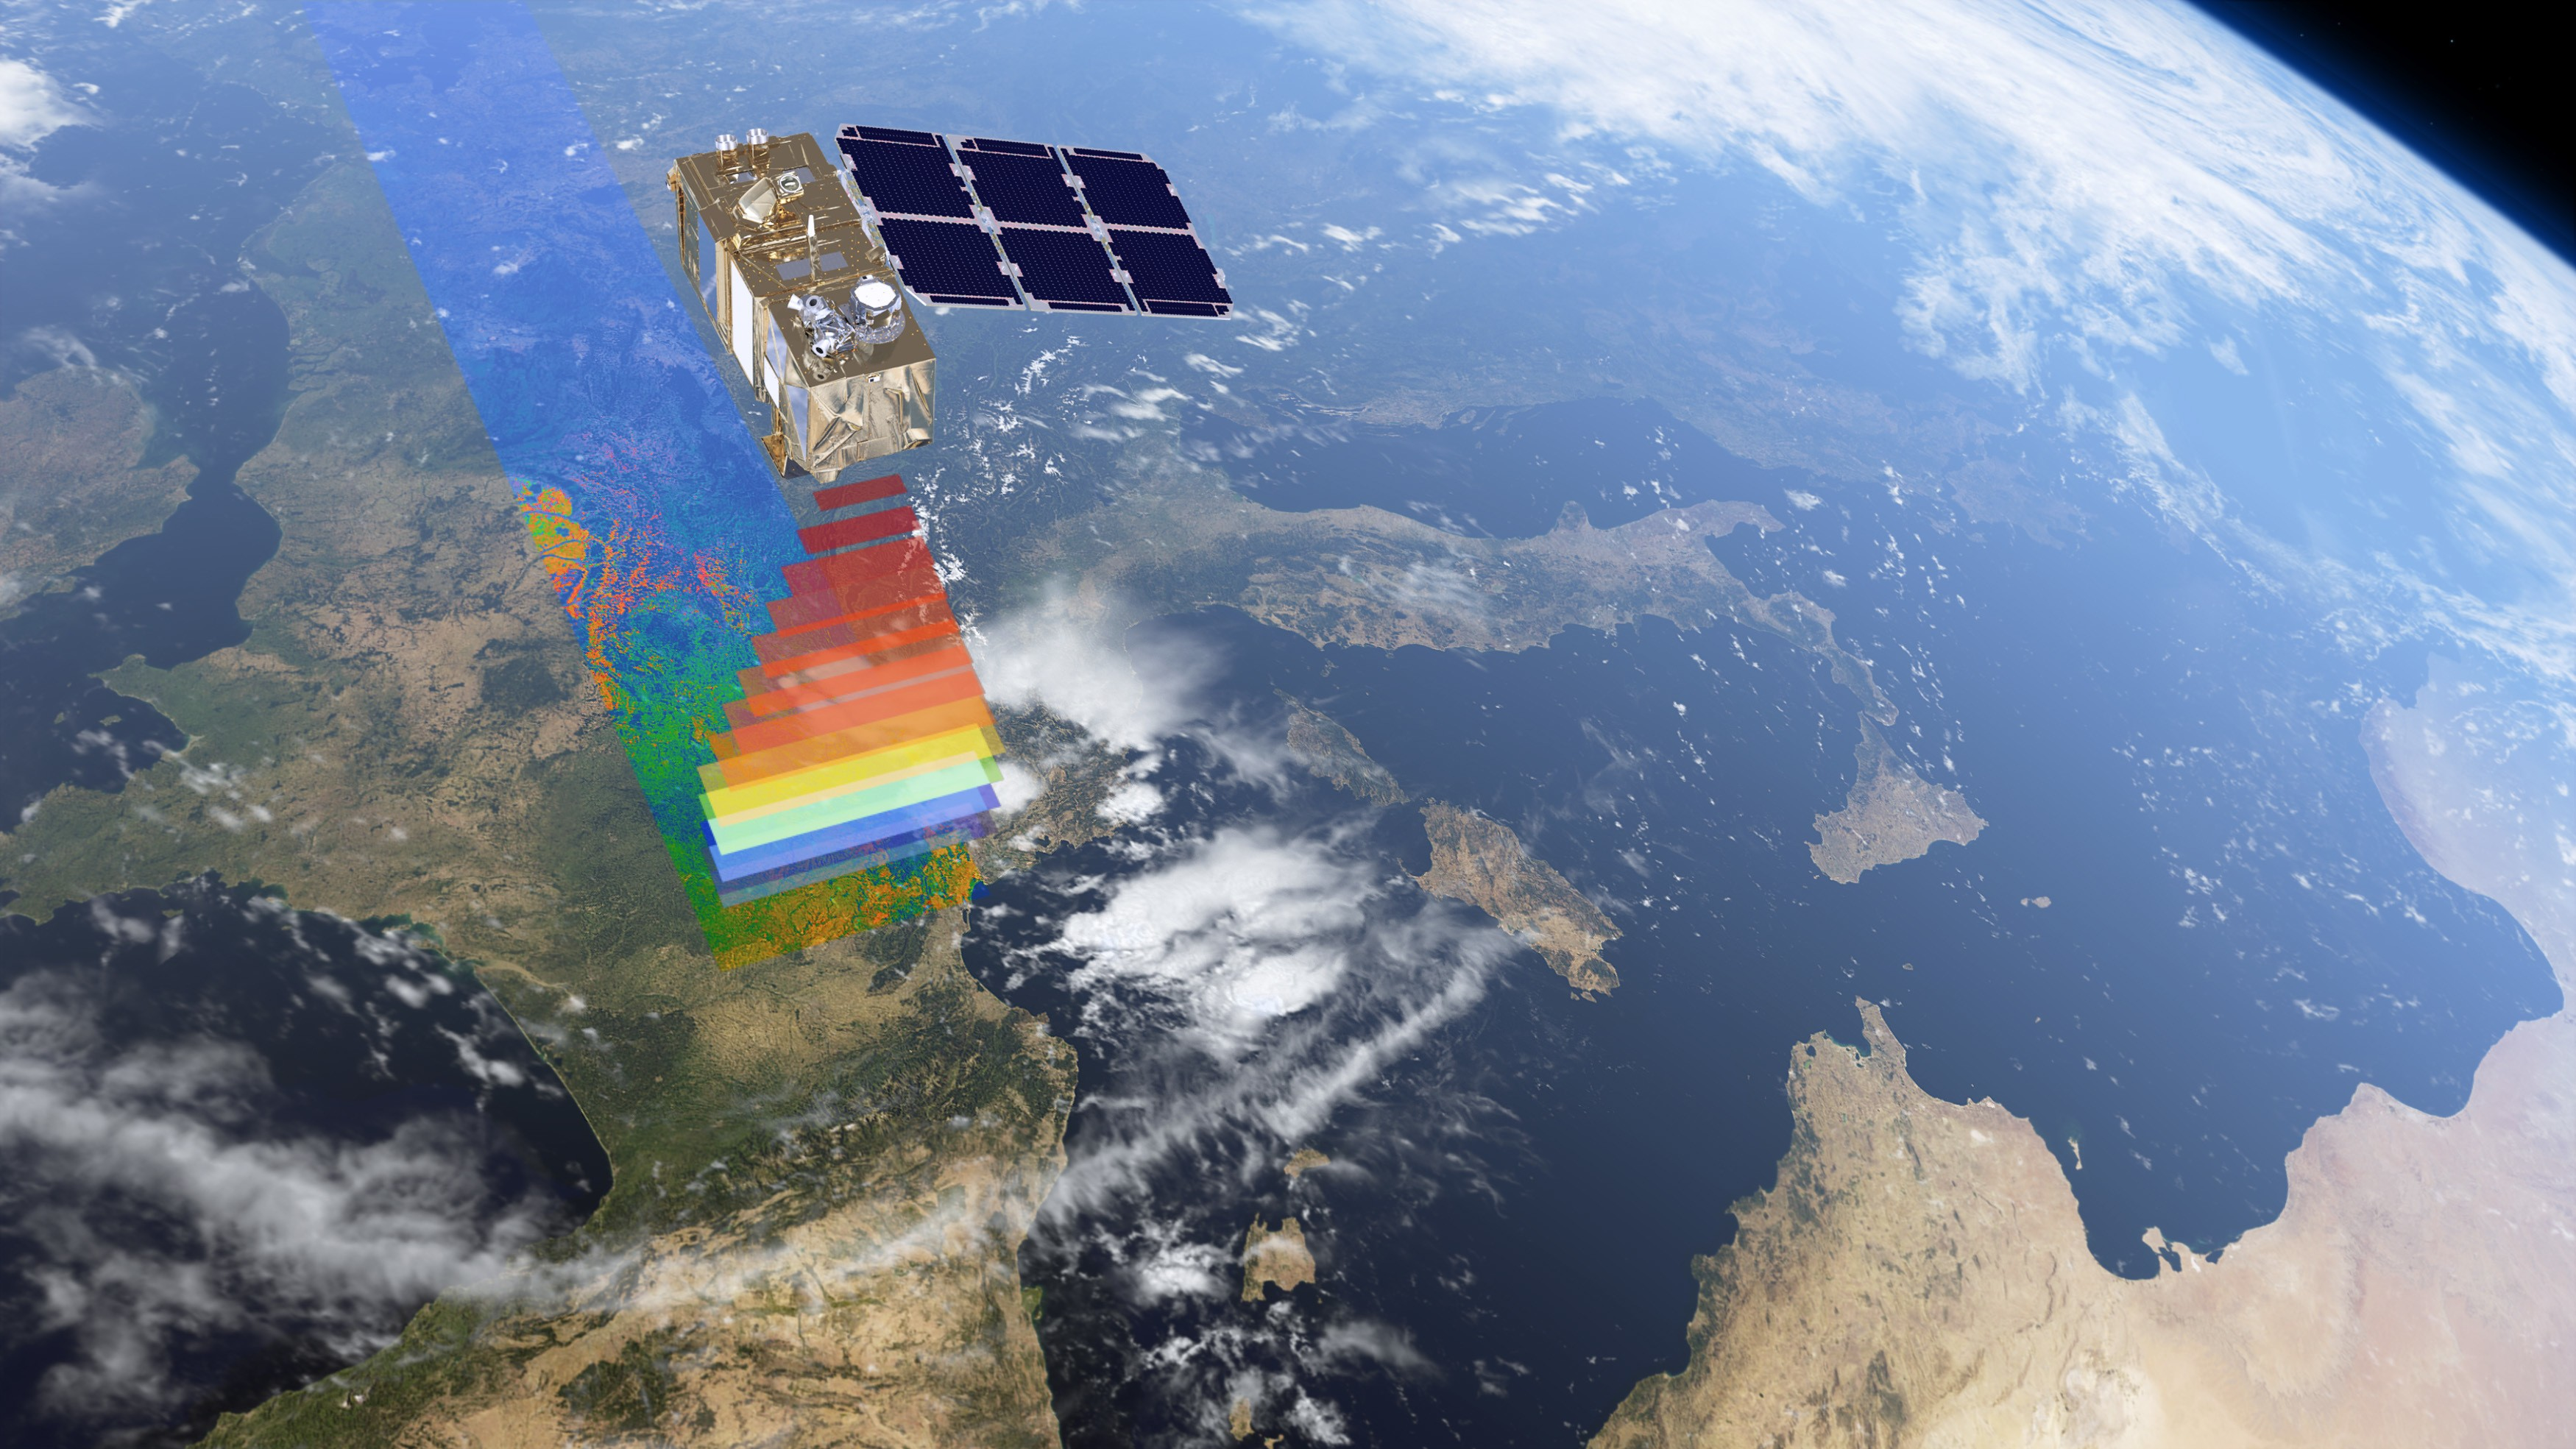 Meet Sentinel-2A, the Guardian Satellite Now Orbiting Earth